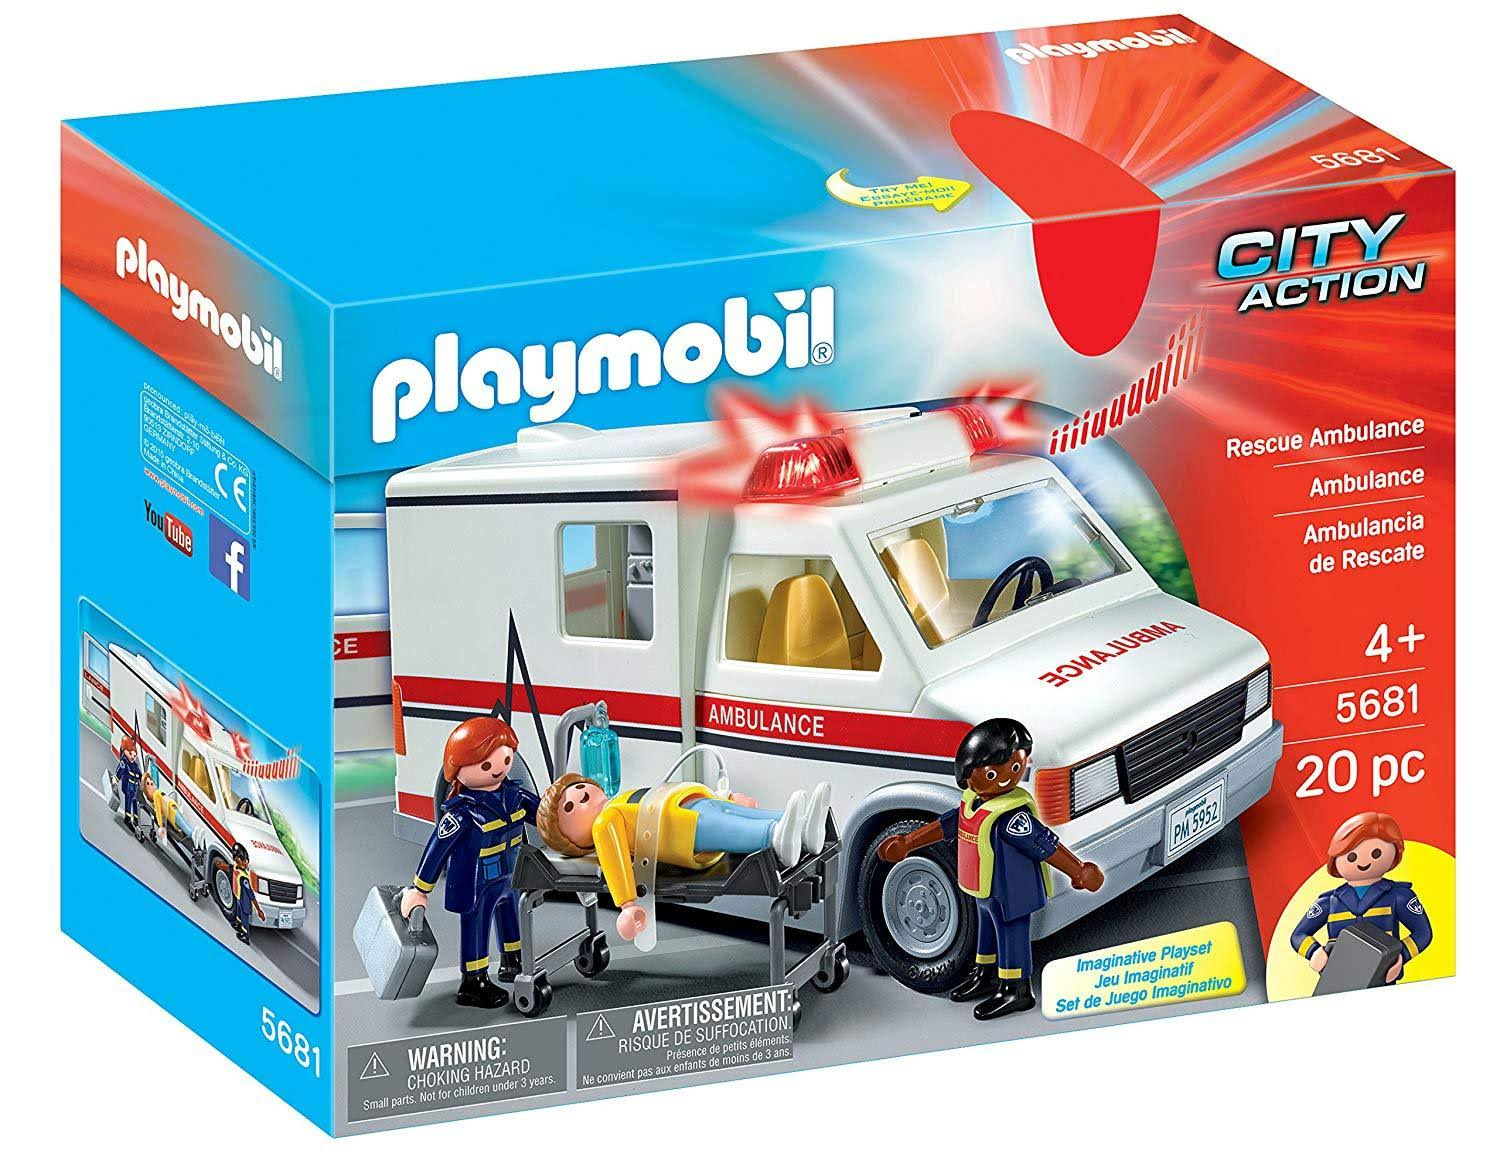 Playmobil 5681 City Action Rescue Ambulance